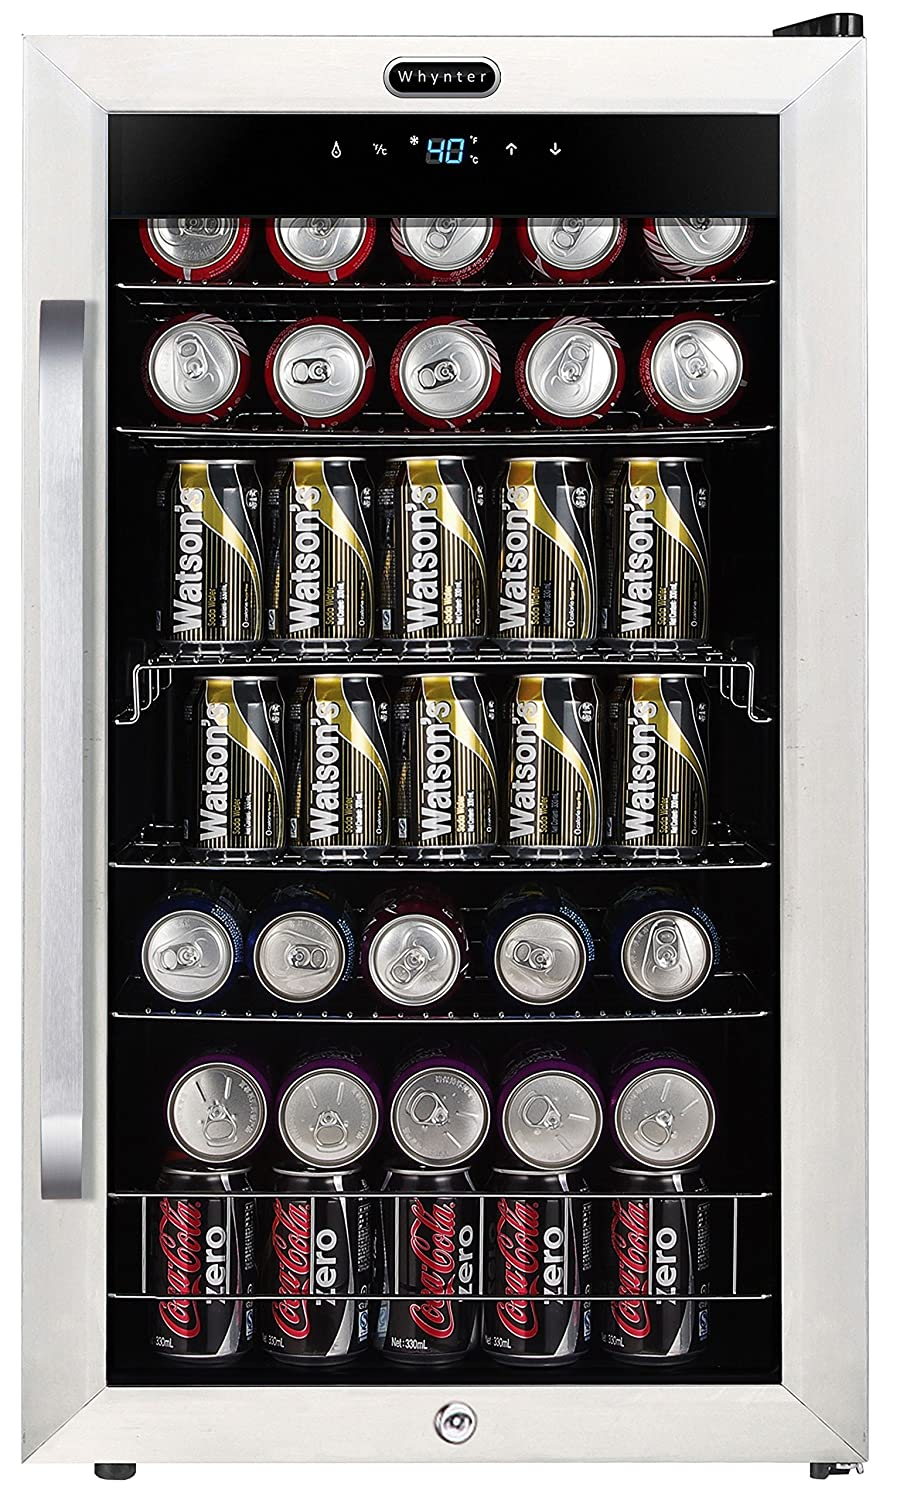 Whynter BR-1211DS Freestanding 121 Can Digital Control and Internal Fan, Stainless Steel Beverage Refrigerator One Size